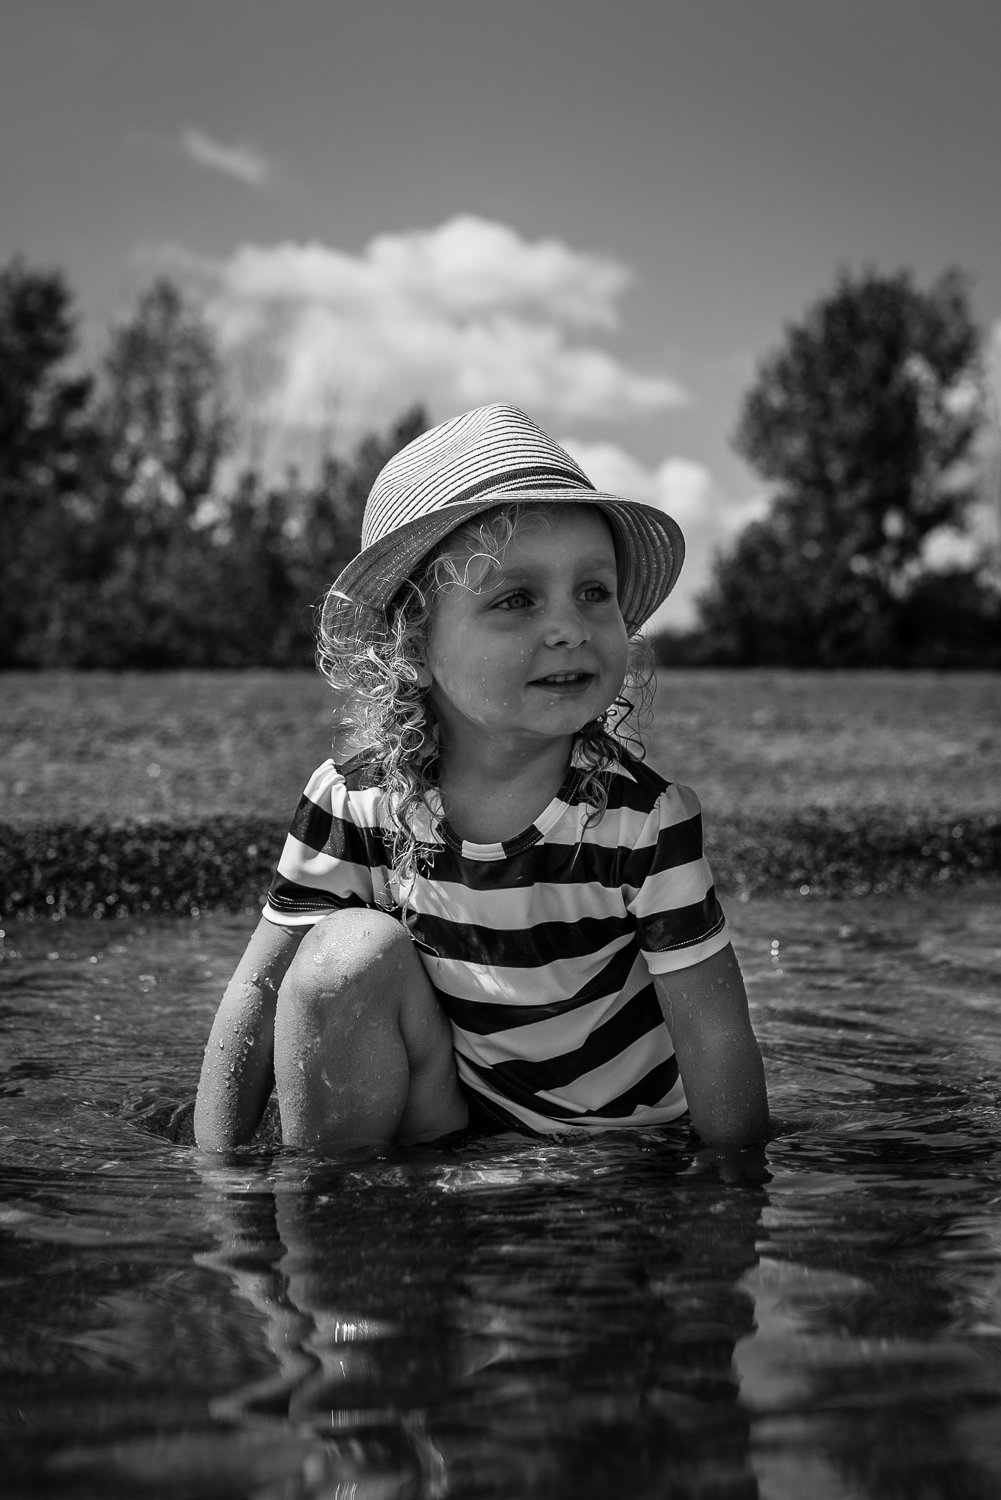 Black and white photograph of a toddler girl in a fedora hat and a stripped UV bathing suit sitting in the beach water with trees and sky with fluffy white clouds behind her.